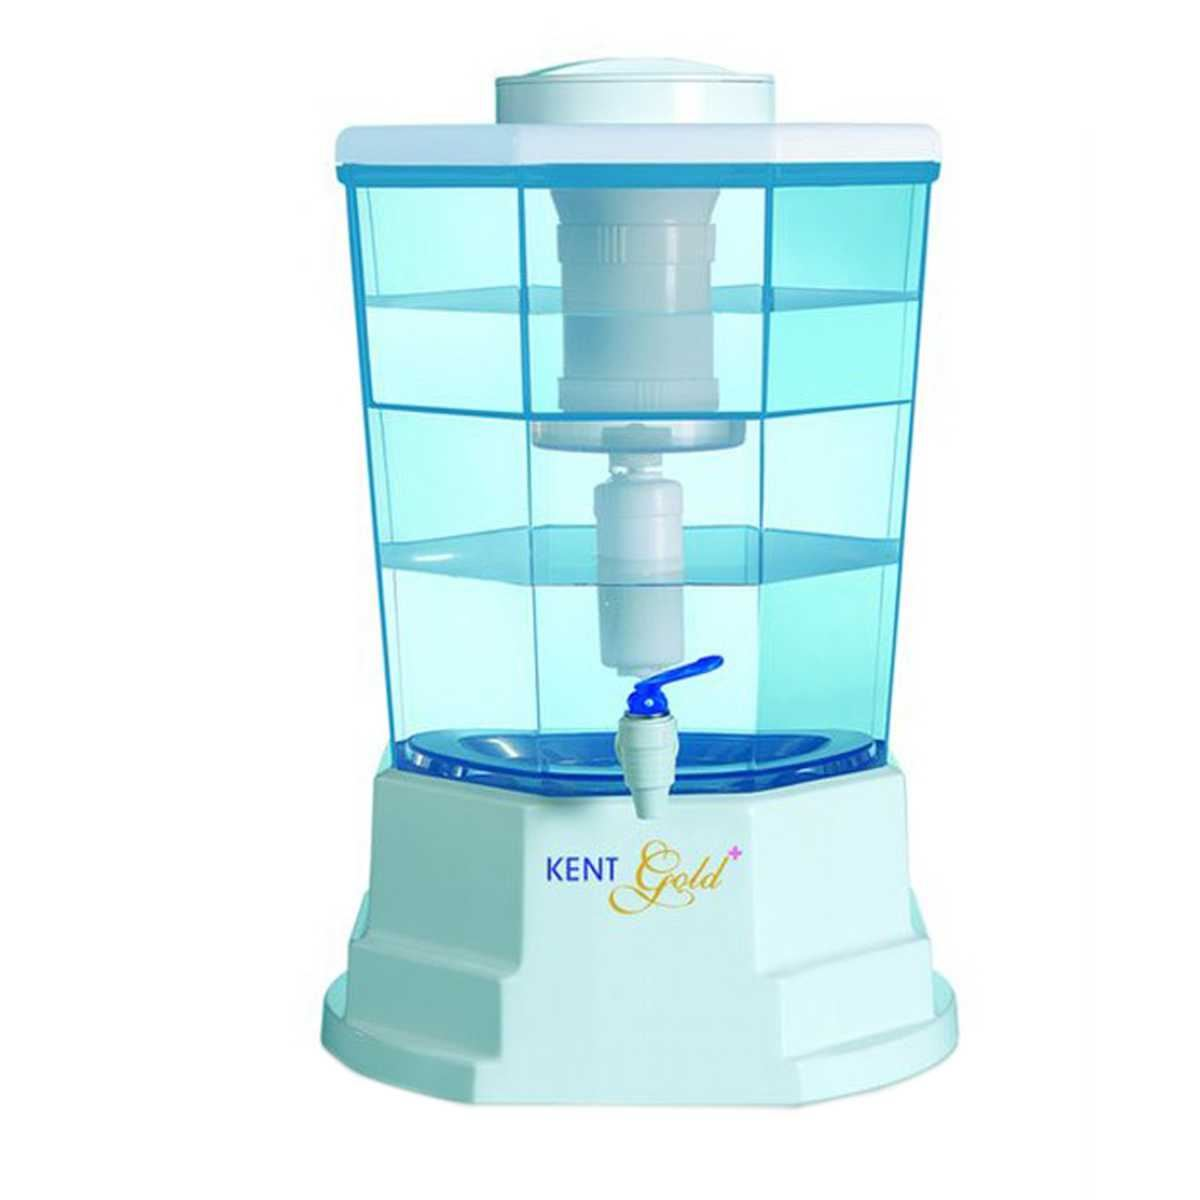 Picture of Kent Gold Water Purifiers